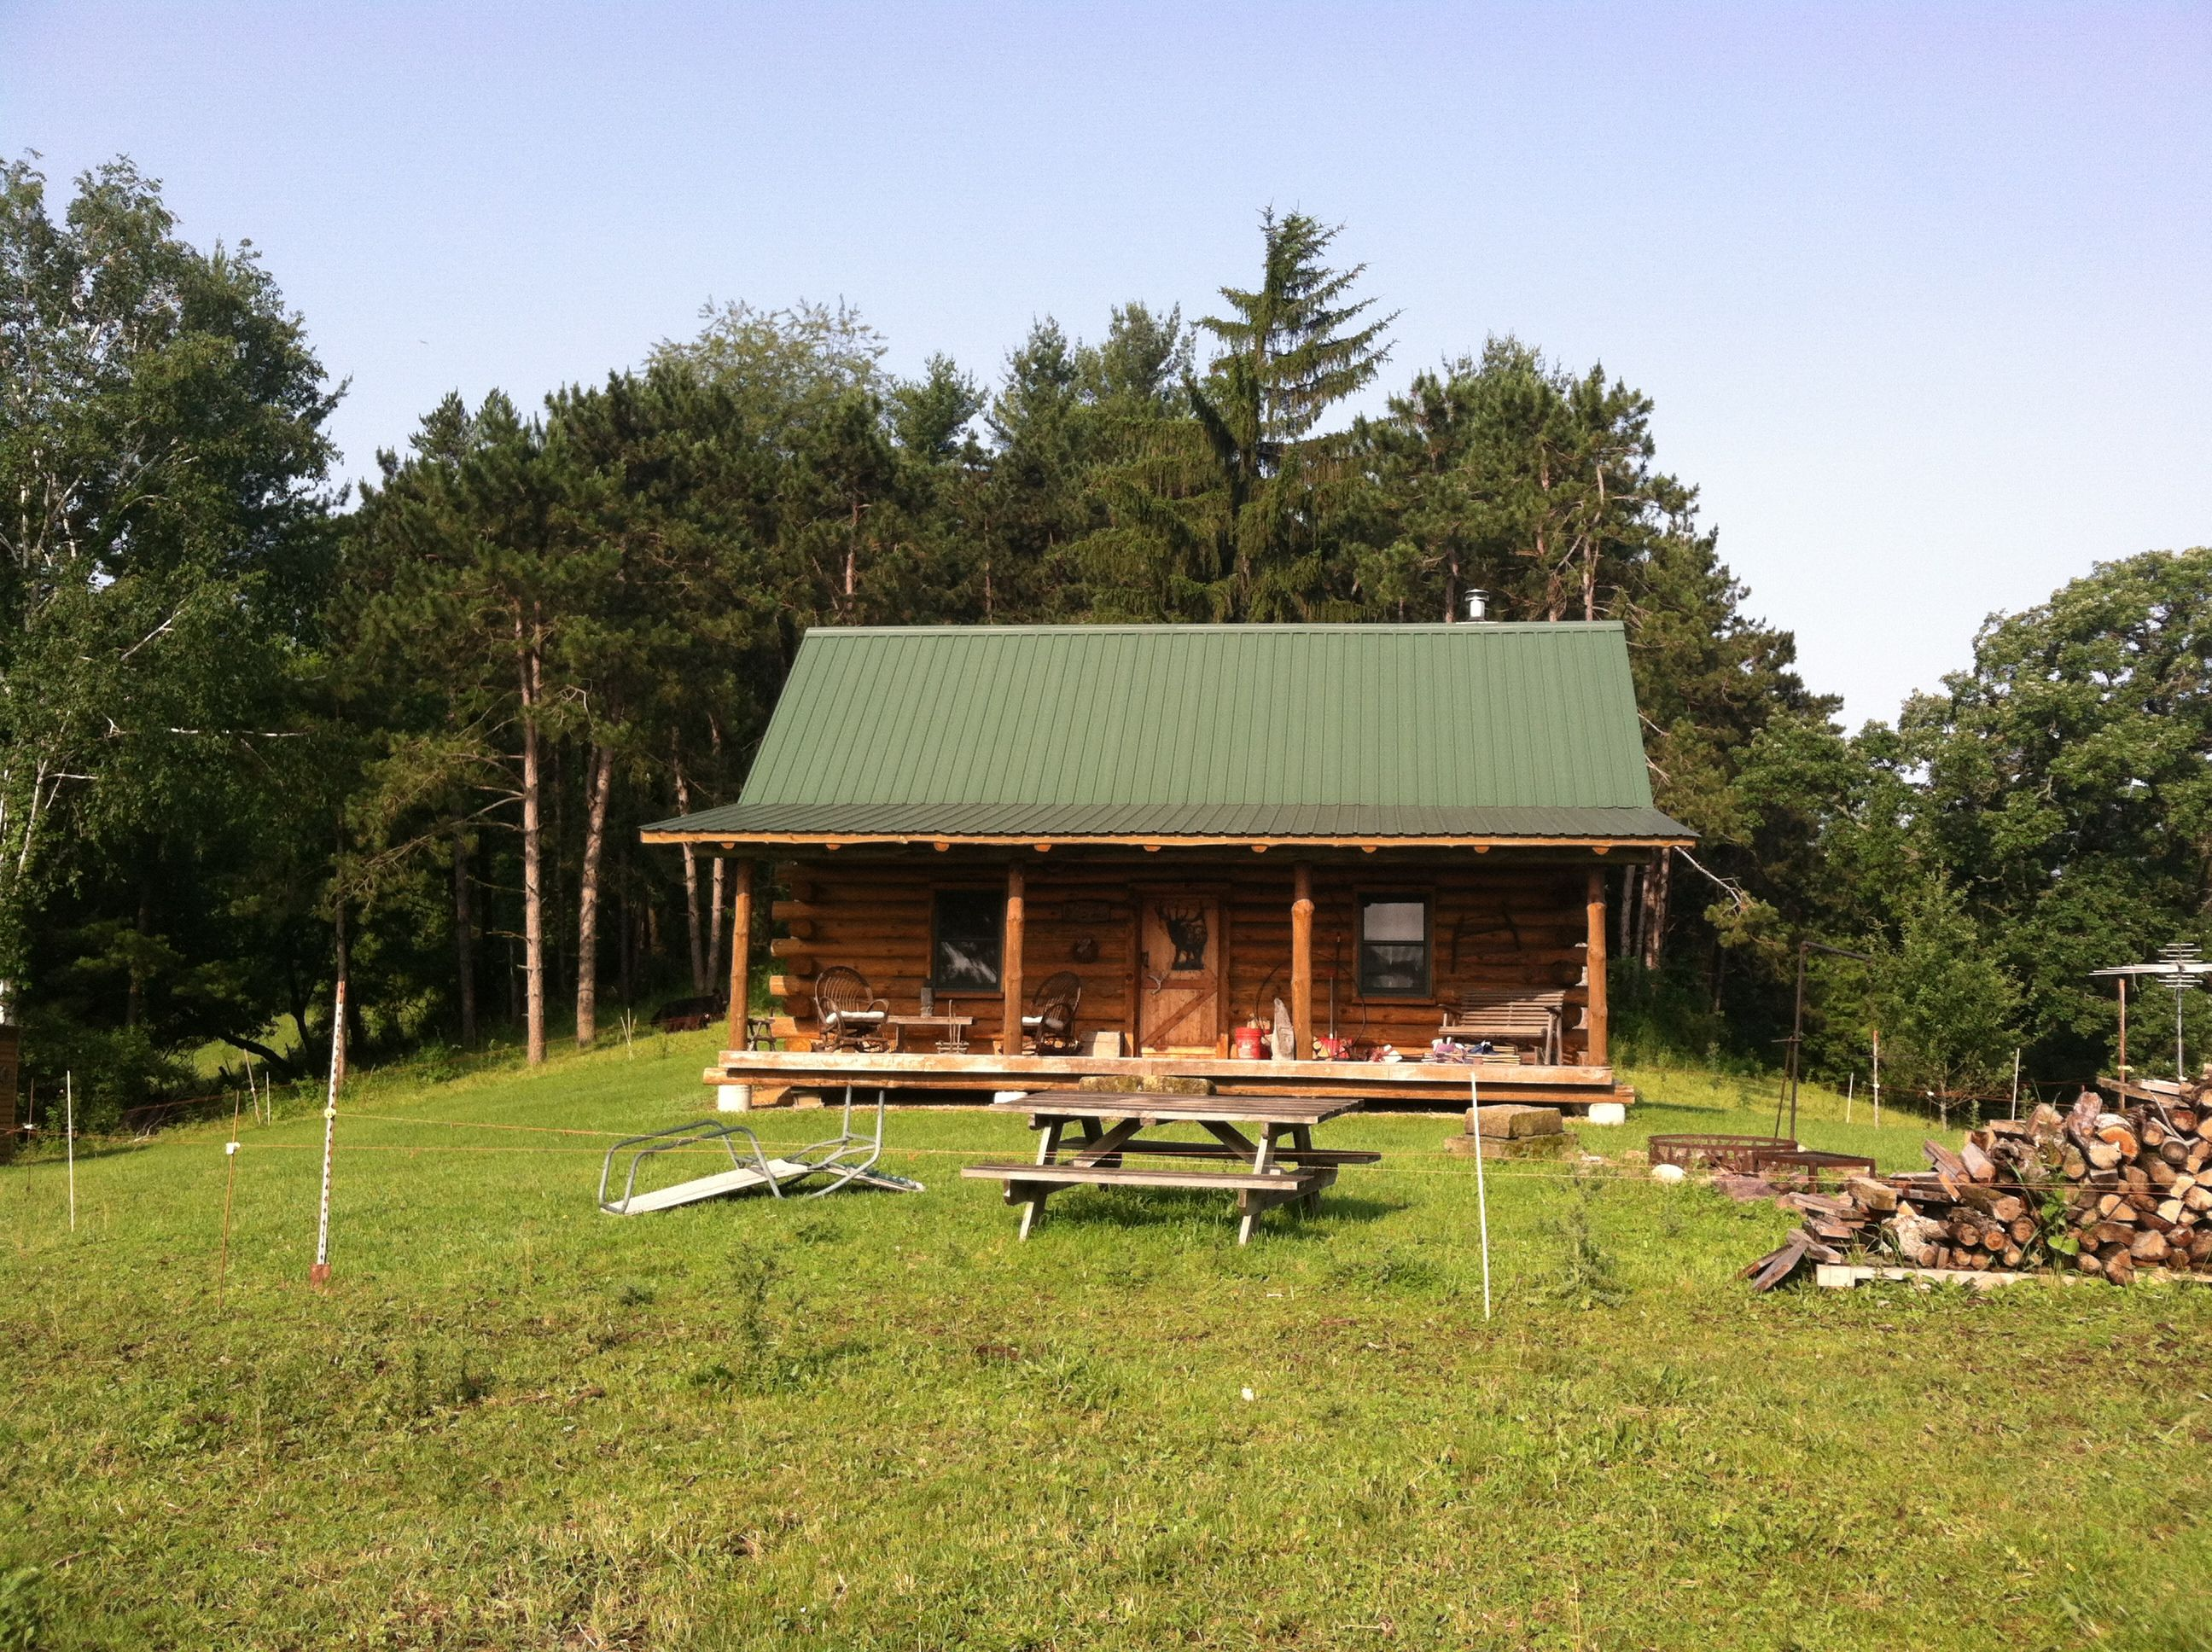 Marvelous photograph of Pin by Jonathan Kenworthy on Log Houses Pinterest with #1D48AE color and 2592x1936 pixels